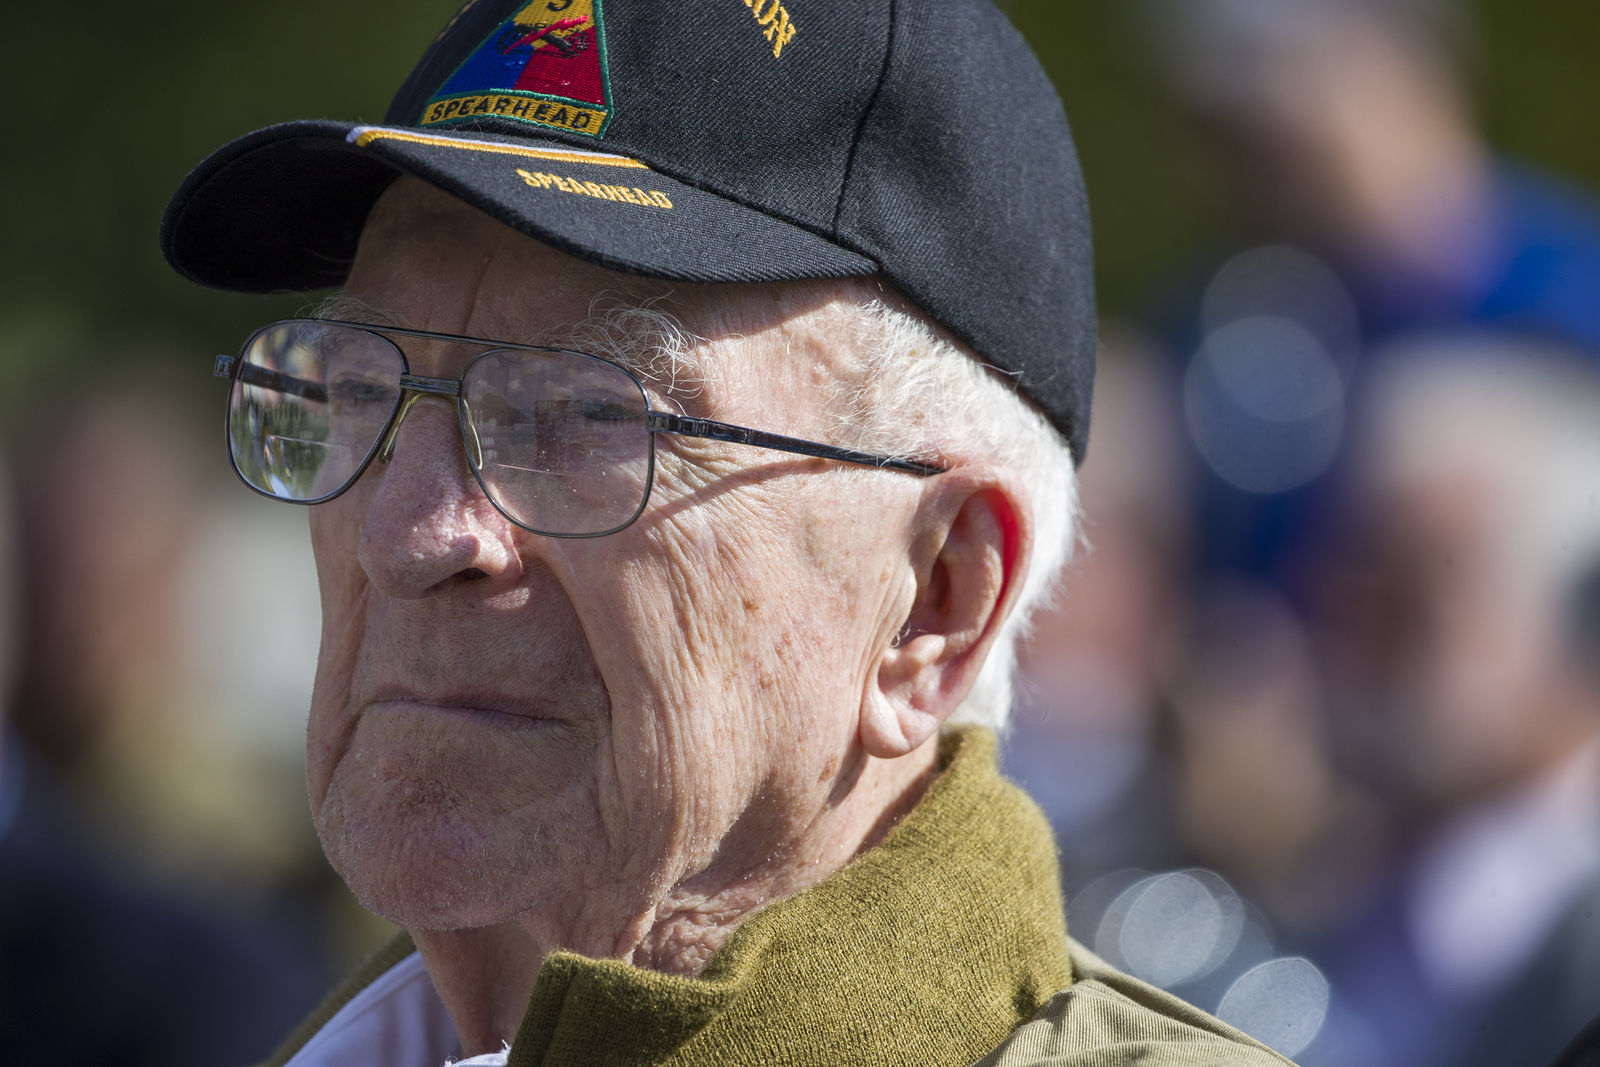 World War II veteran Clarence Smoyer, 96, sits before receiving the Bronze Star at the World War II Memorial, Wednesday, Sept. 18, 2019, in Washington. Smoyer fought with the U.S. Army's 3rd Armored Division, nicknamed the Spearhead Division. AP Photo/Alex Brandon)